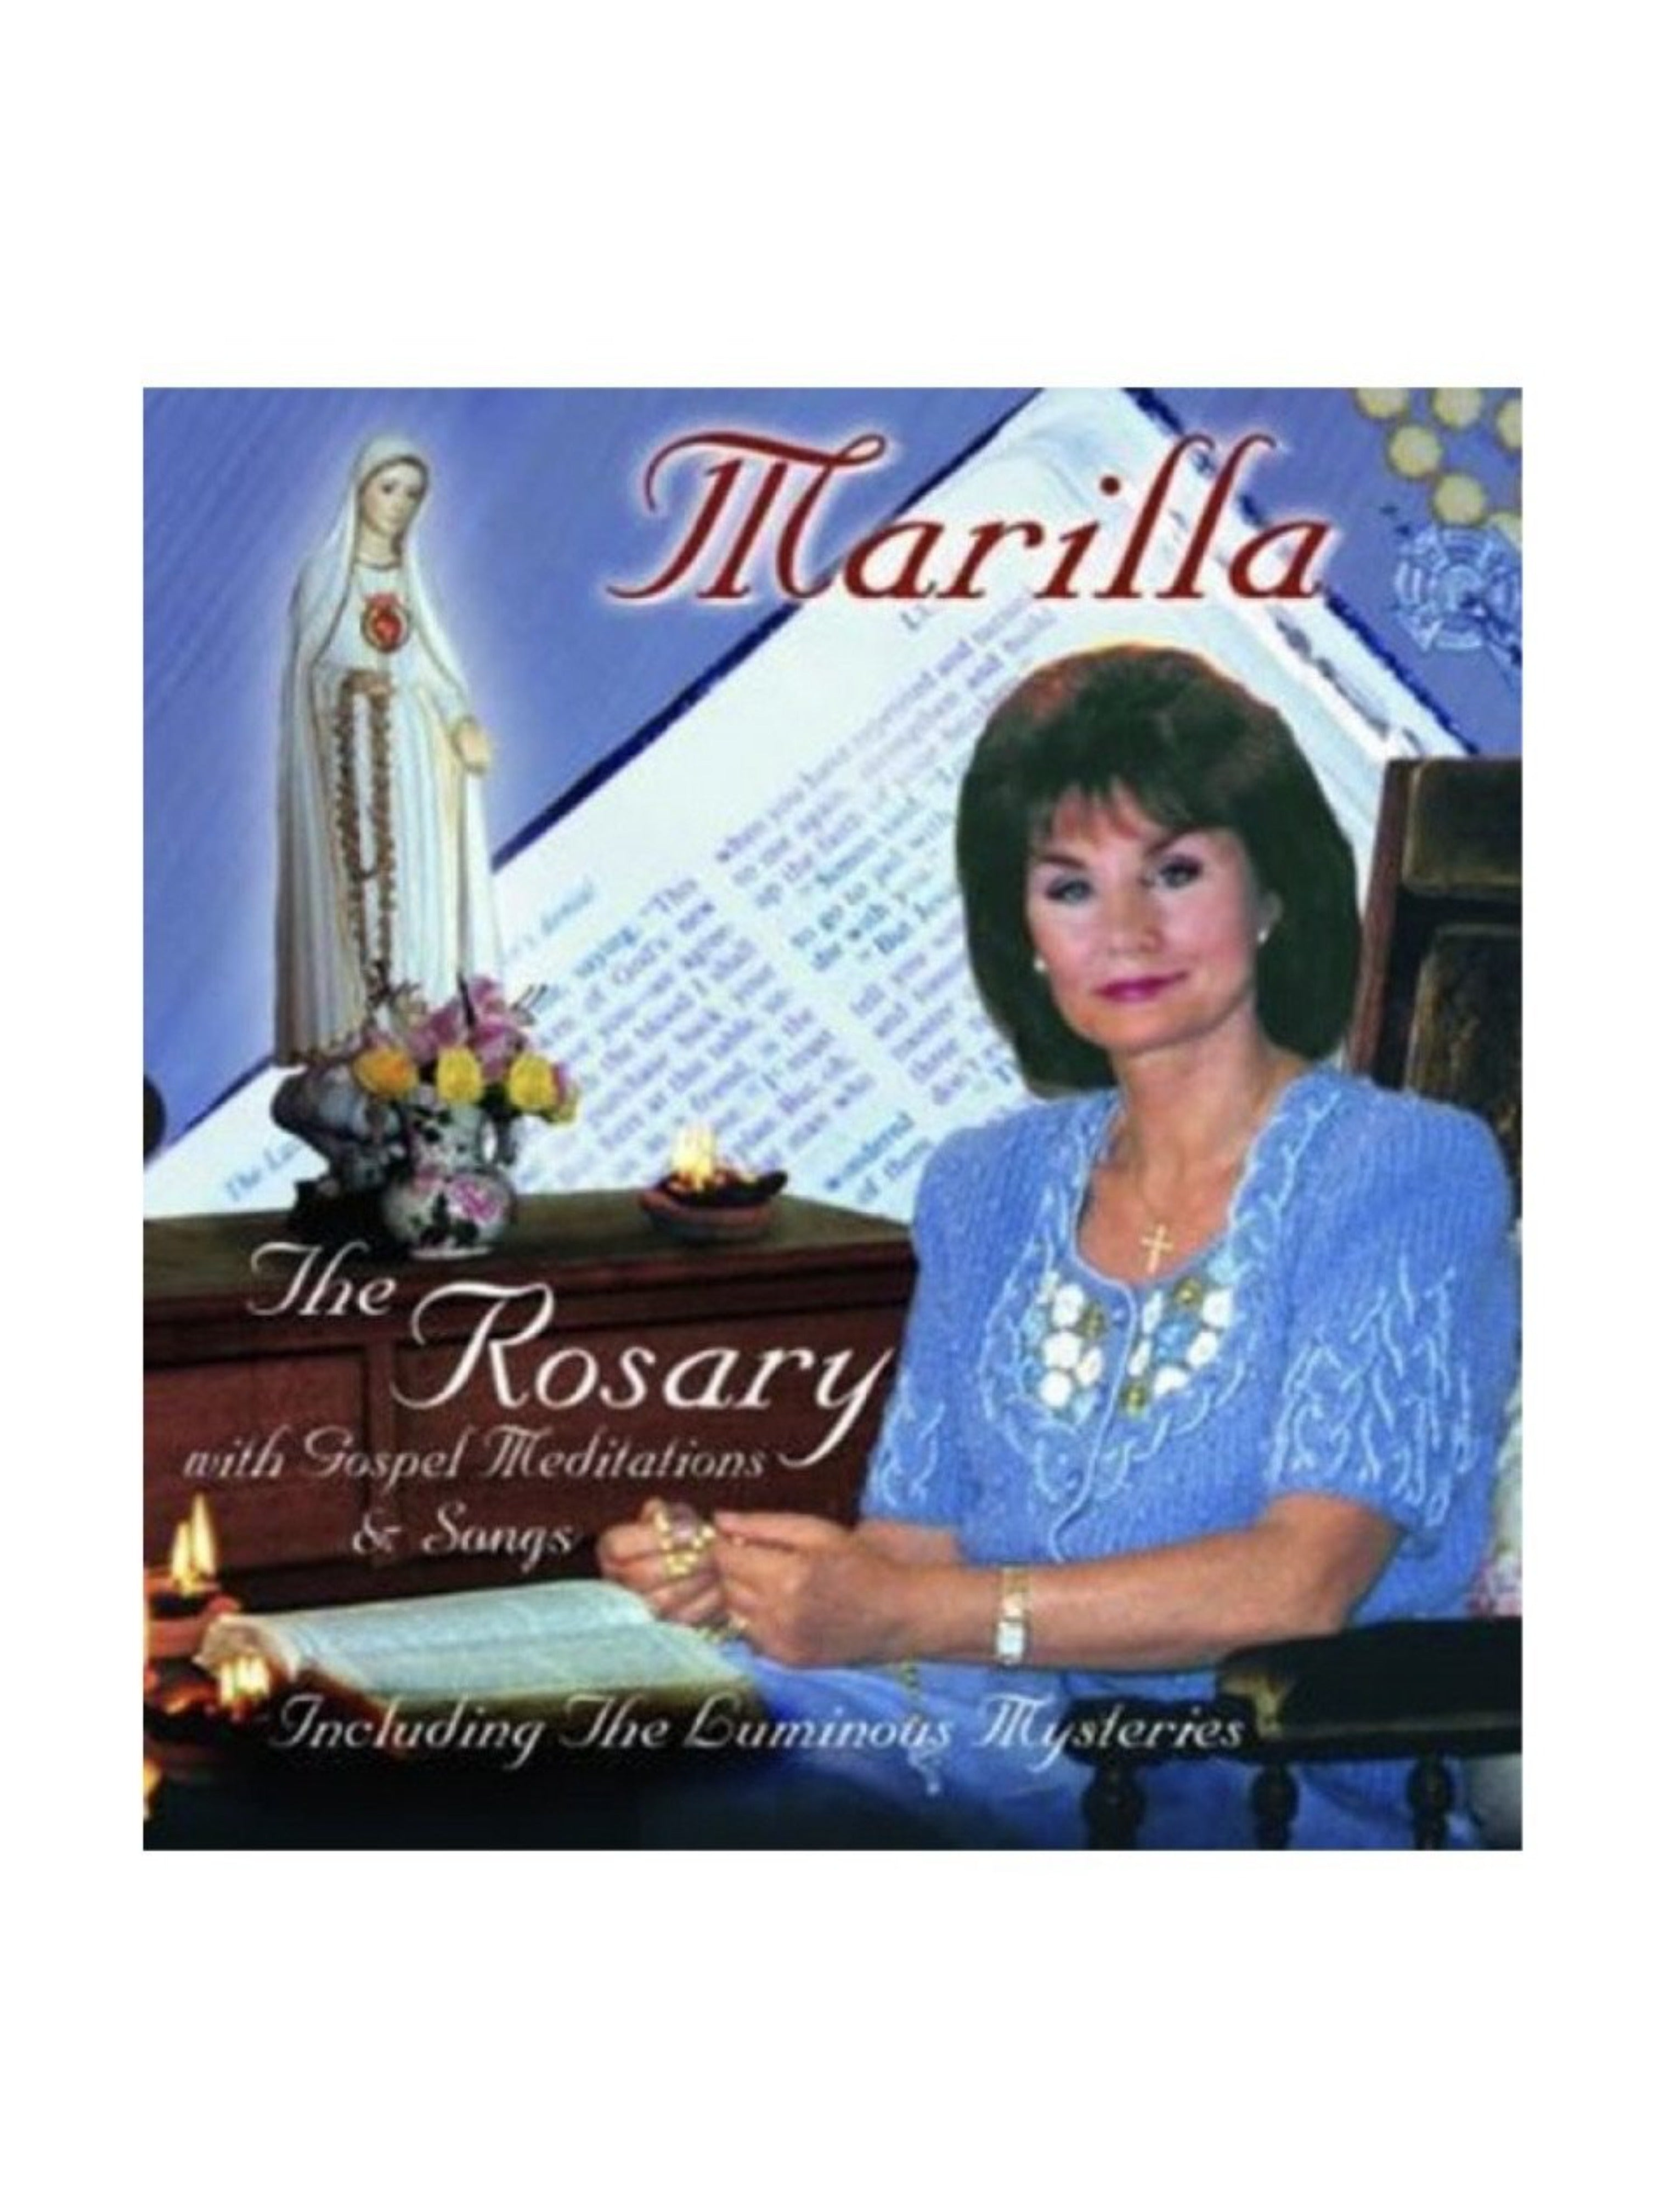 The Rosary CD